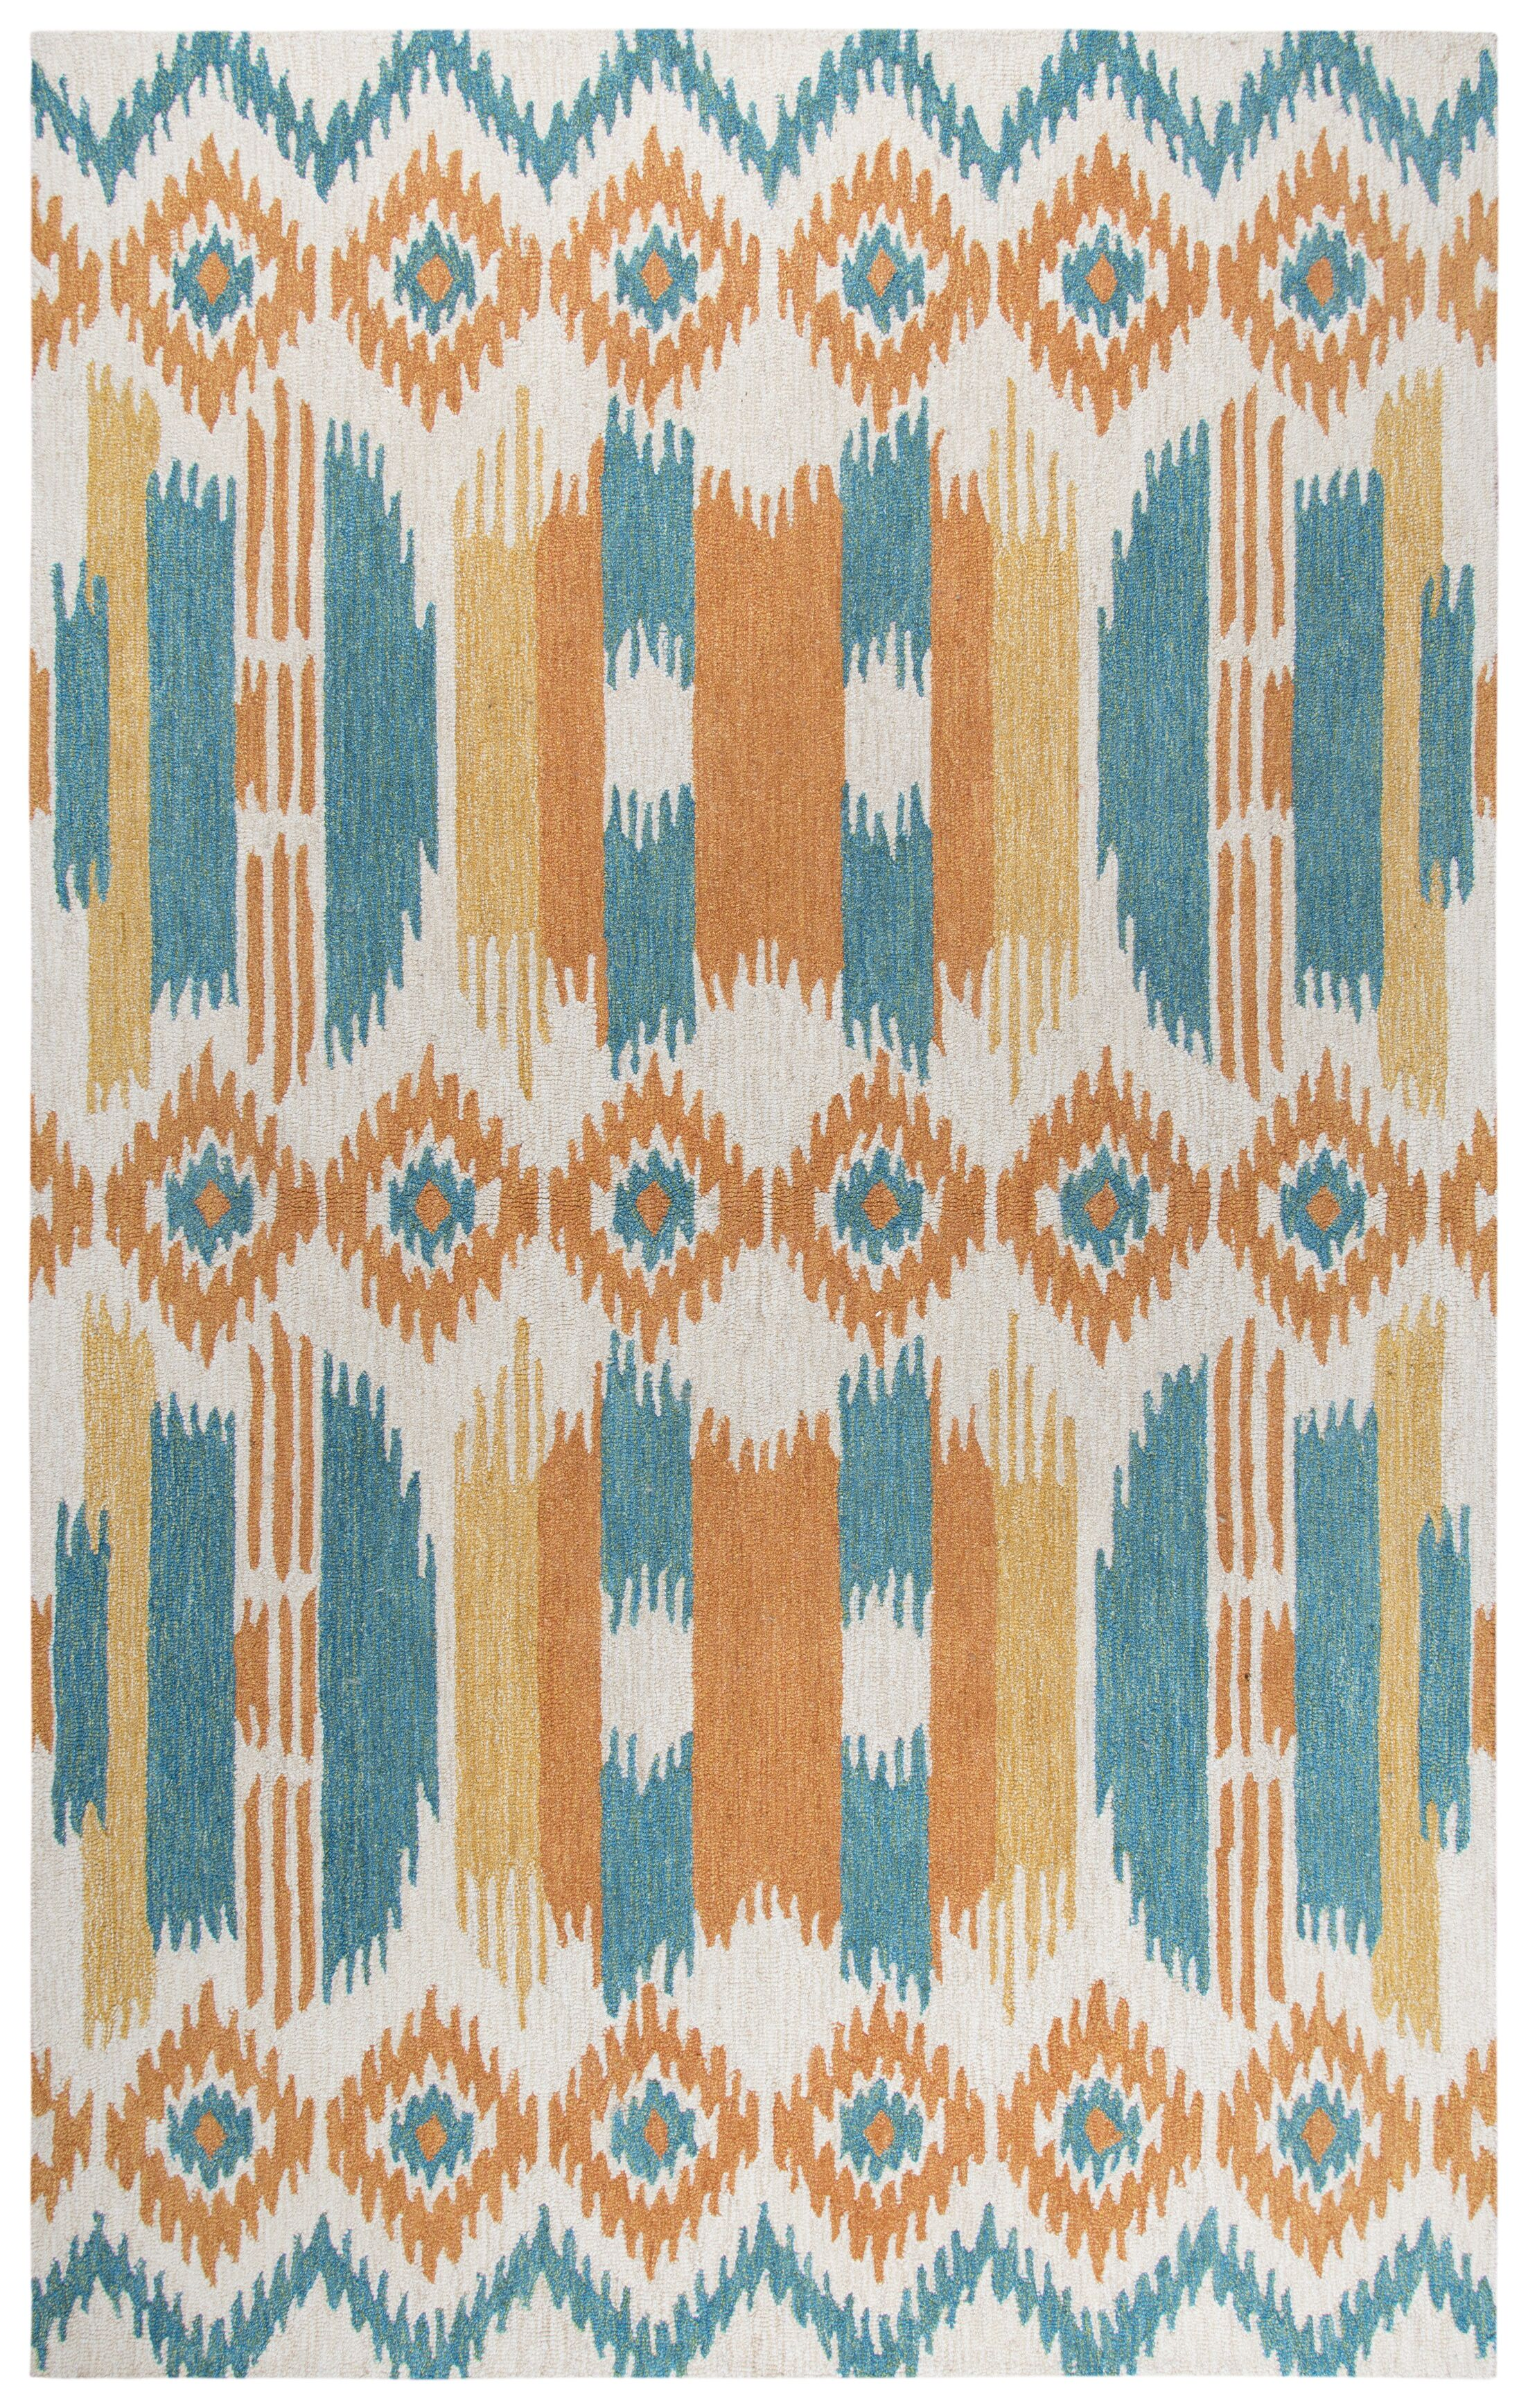 Duron Hand-Tufted Wool Blue/Natural Area Rug Rug Size: Rectangle 5' x 8'